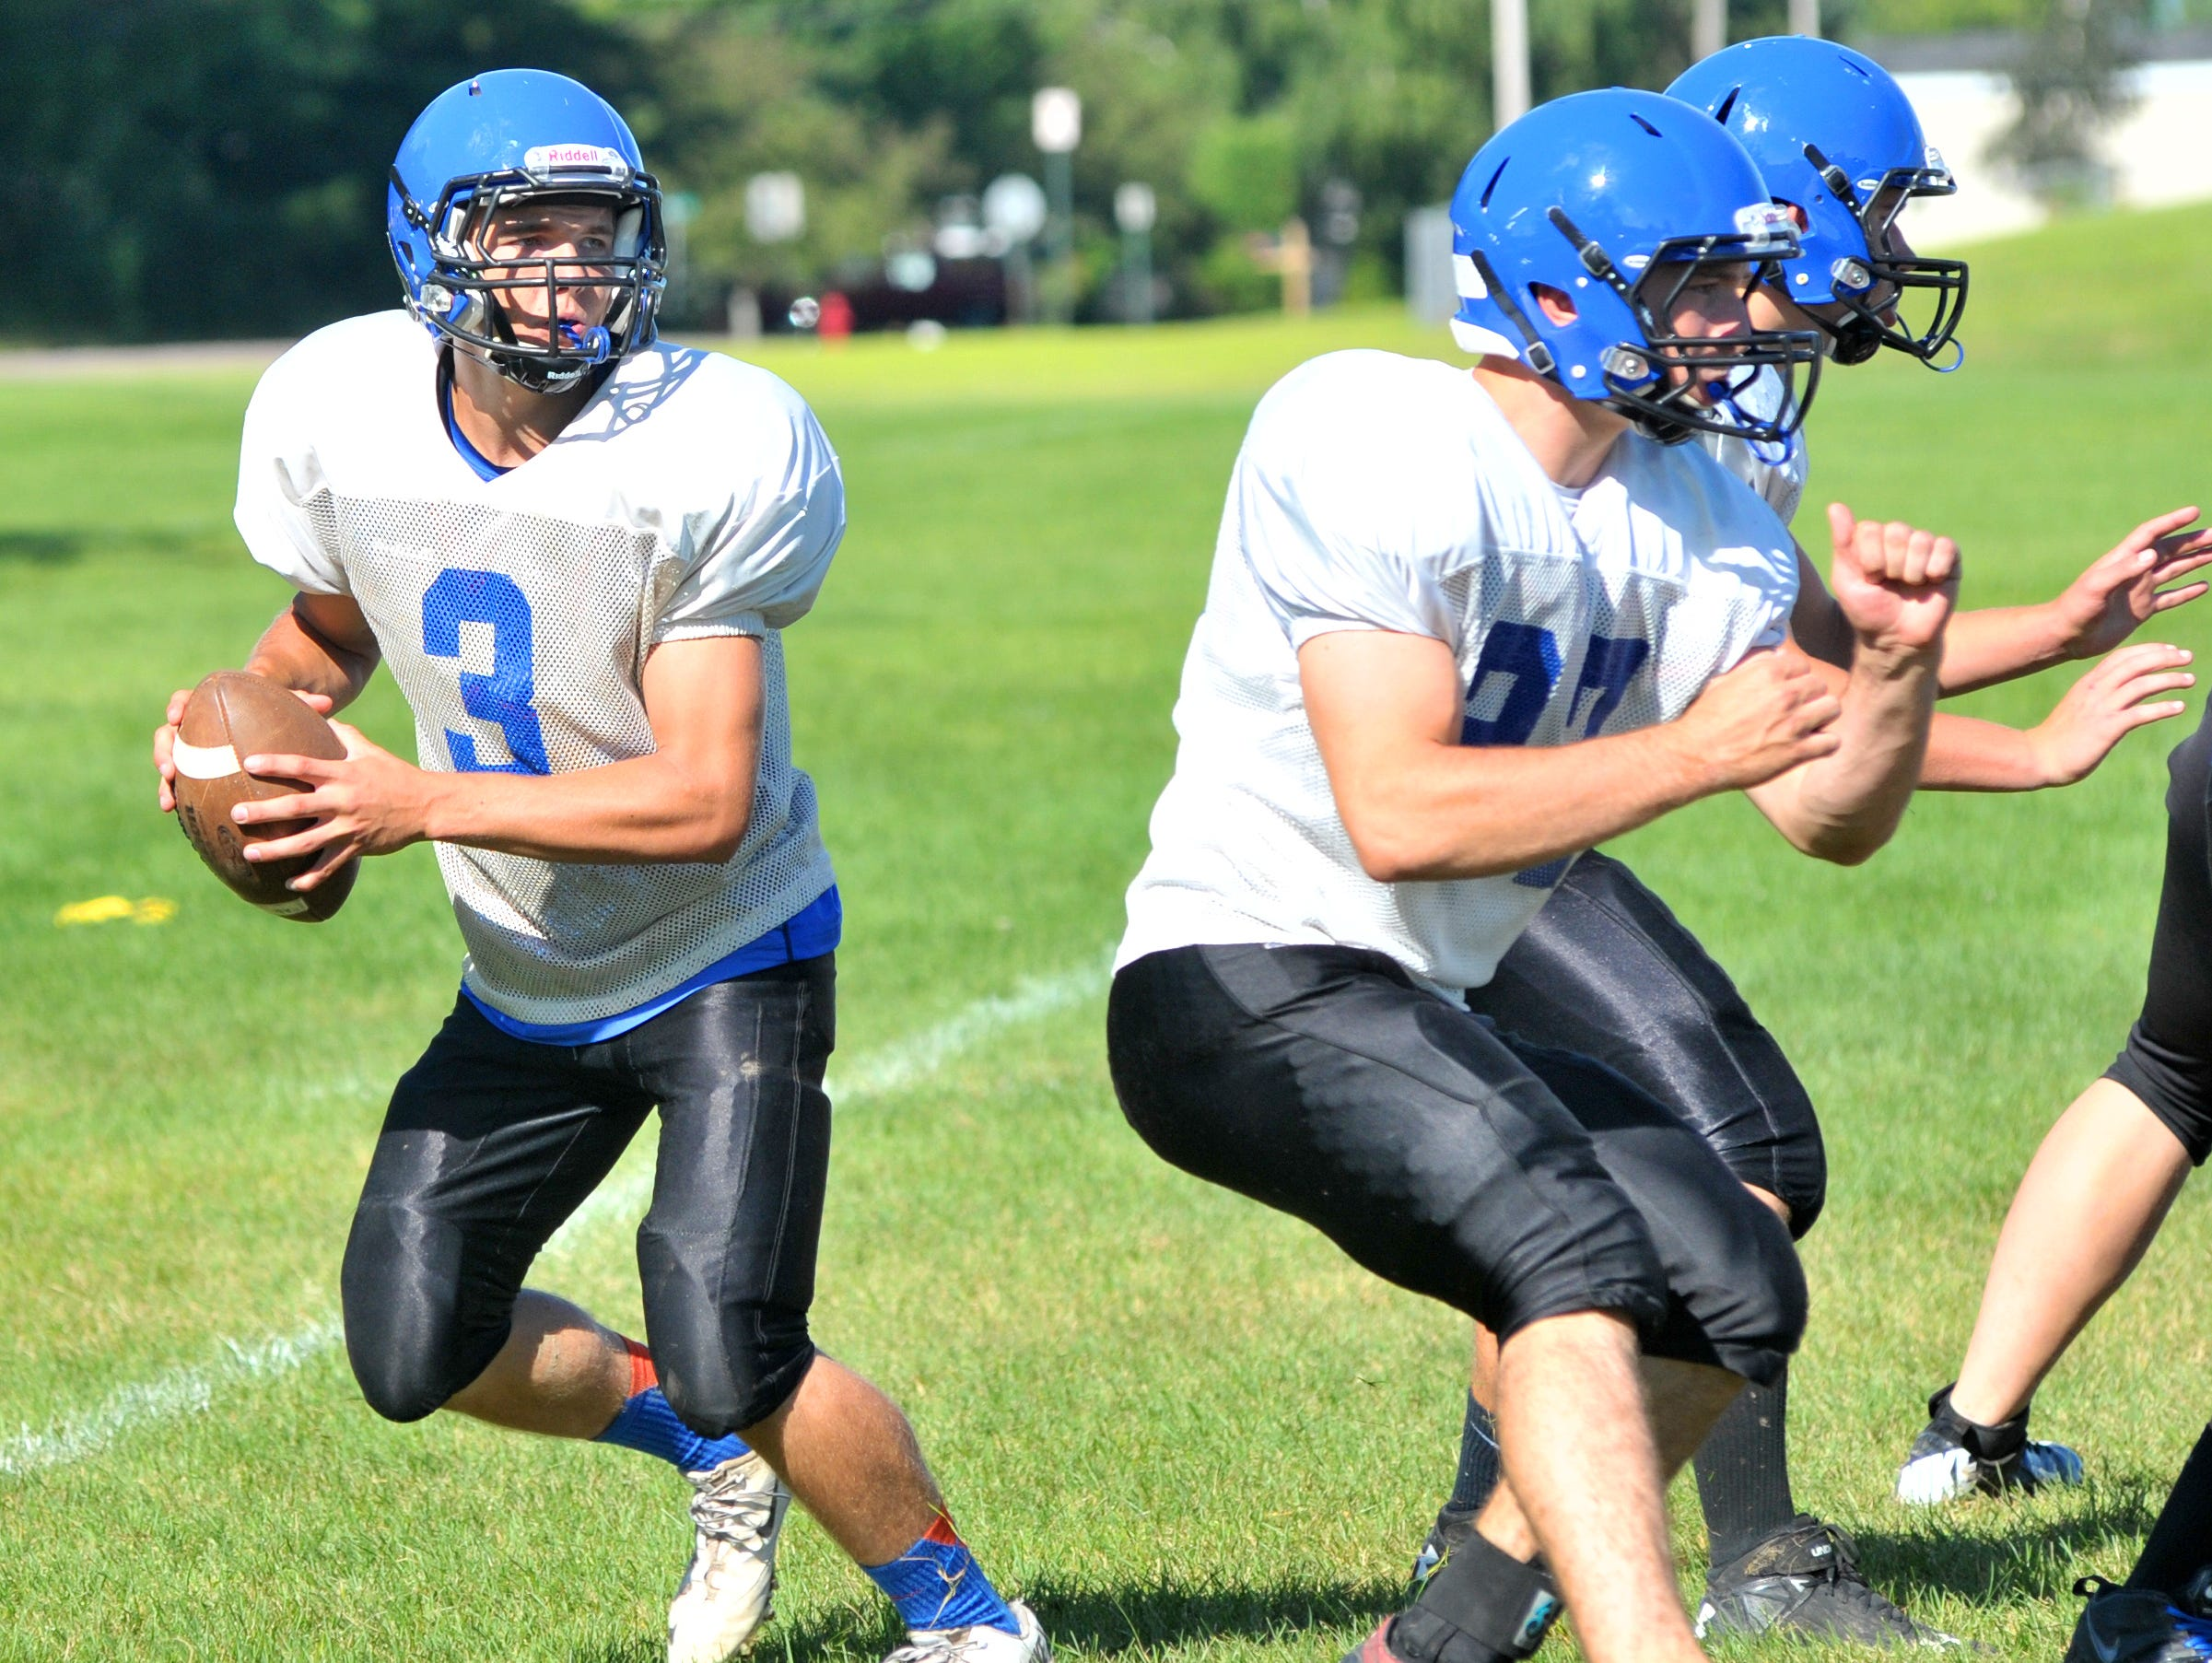 Quarterback Drew Hoff and Merrill have won three straight games since losing the season opener to Superior.